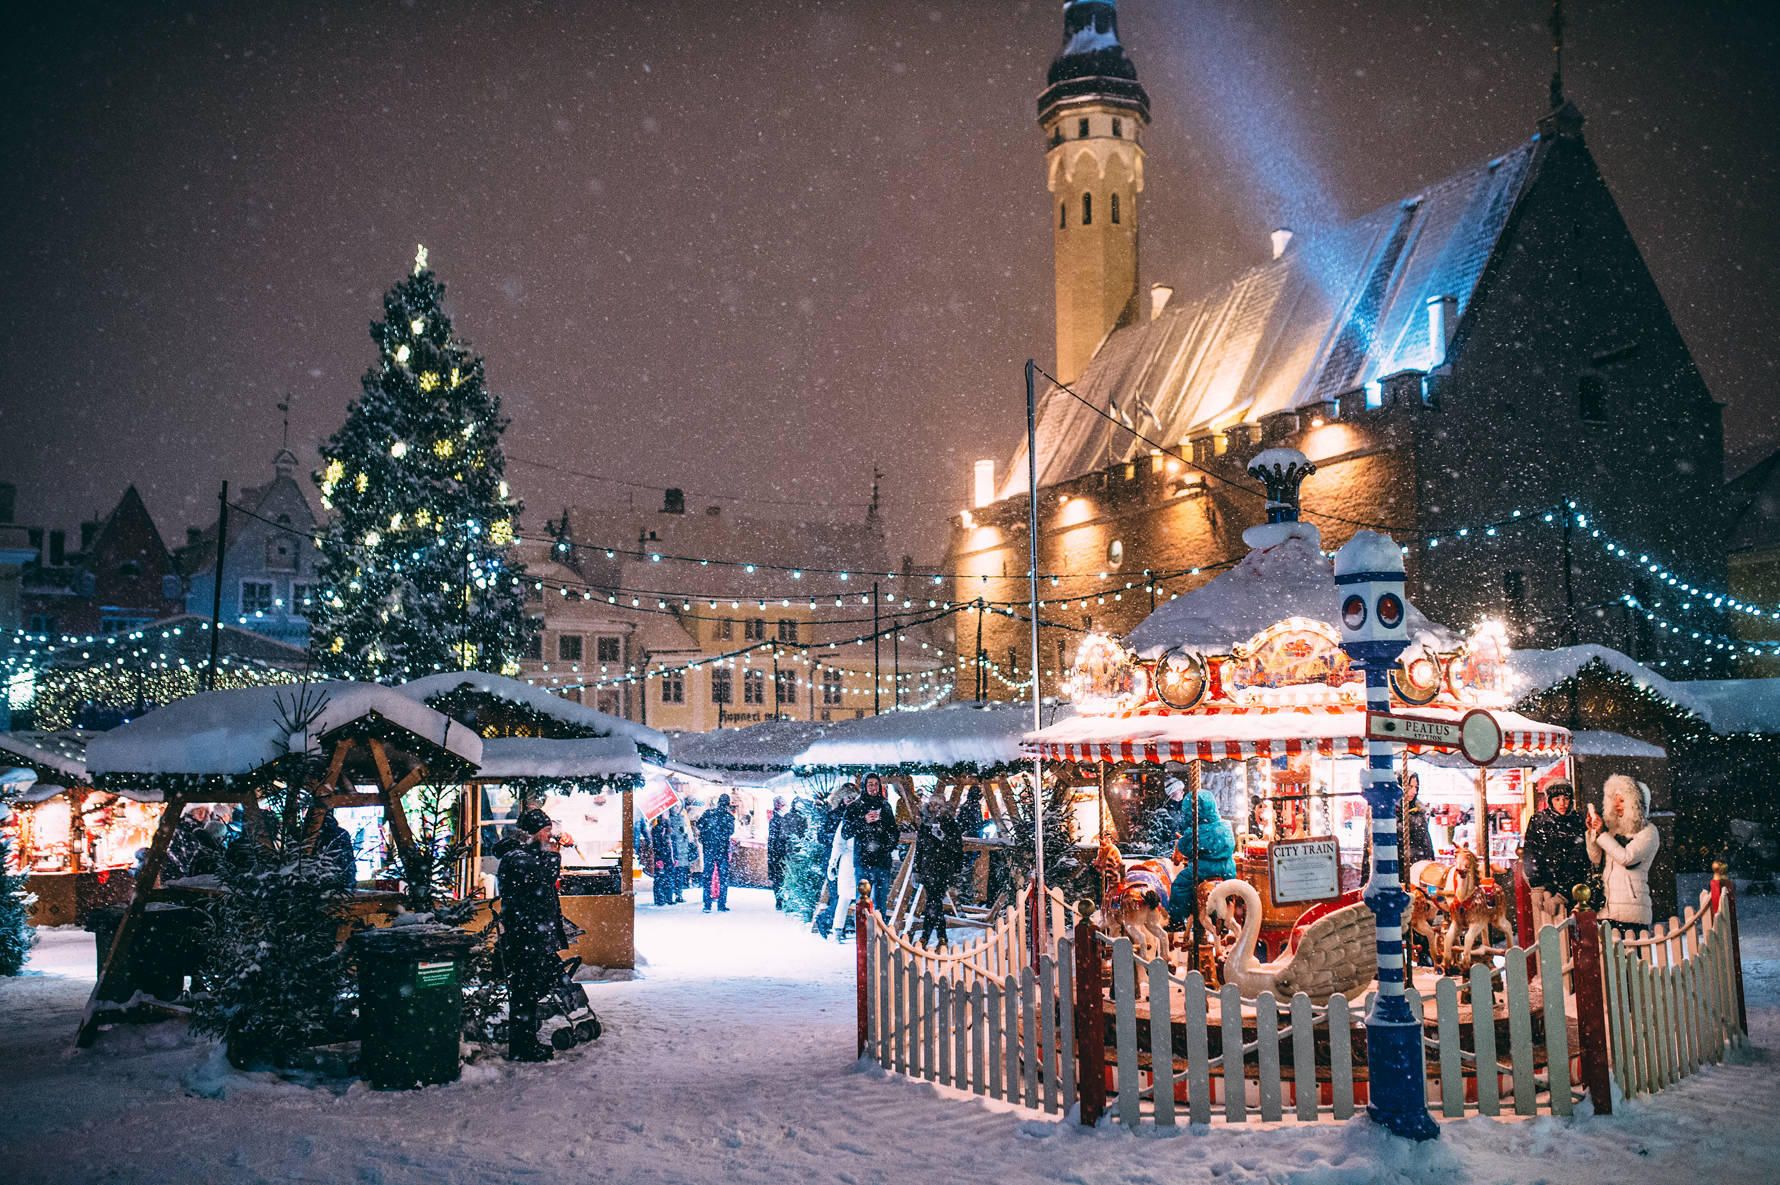 View of the Christmas market including the Christmas tree and carrousel on the Town Hall Square in the Old Town of Tallinn, Estonia. Photo: Jake Farra